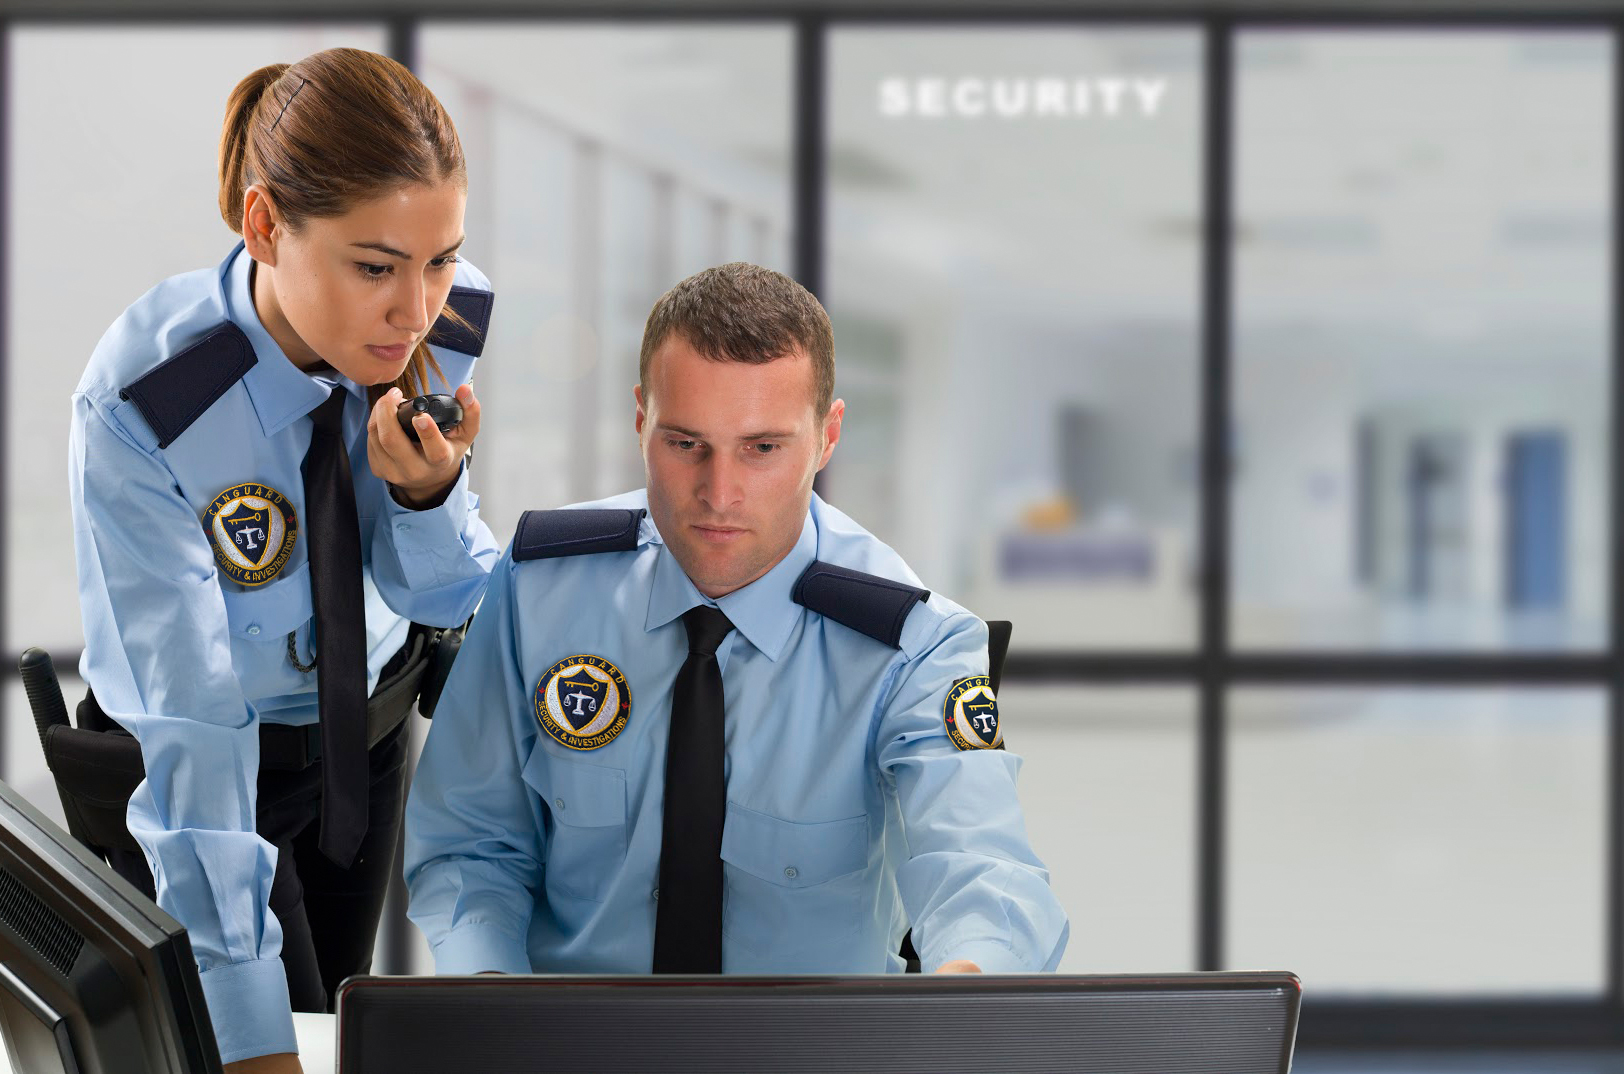 our qualified and competent security guards and personnel are trained to respond swiftly and effectively they take initiative to ensure the safety and